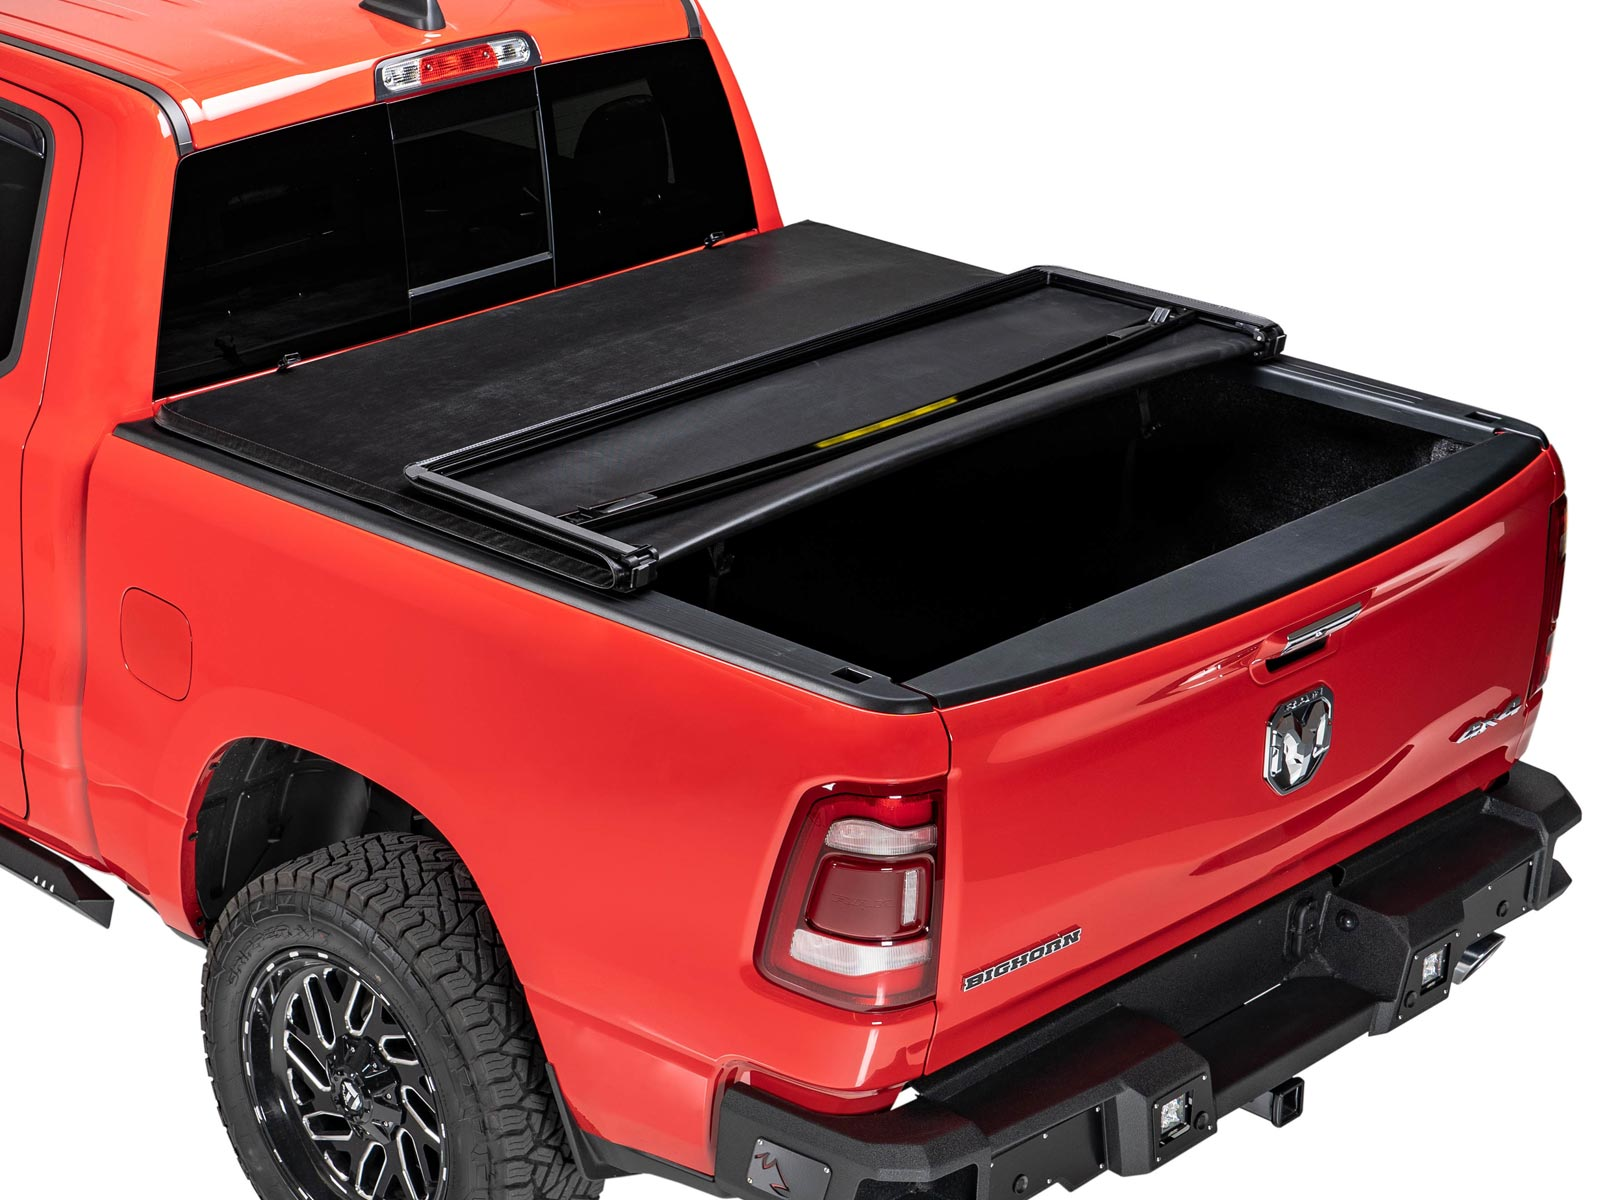 2002 Ford Ranger Tonneau Covers Tonneau Covers World